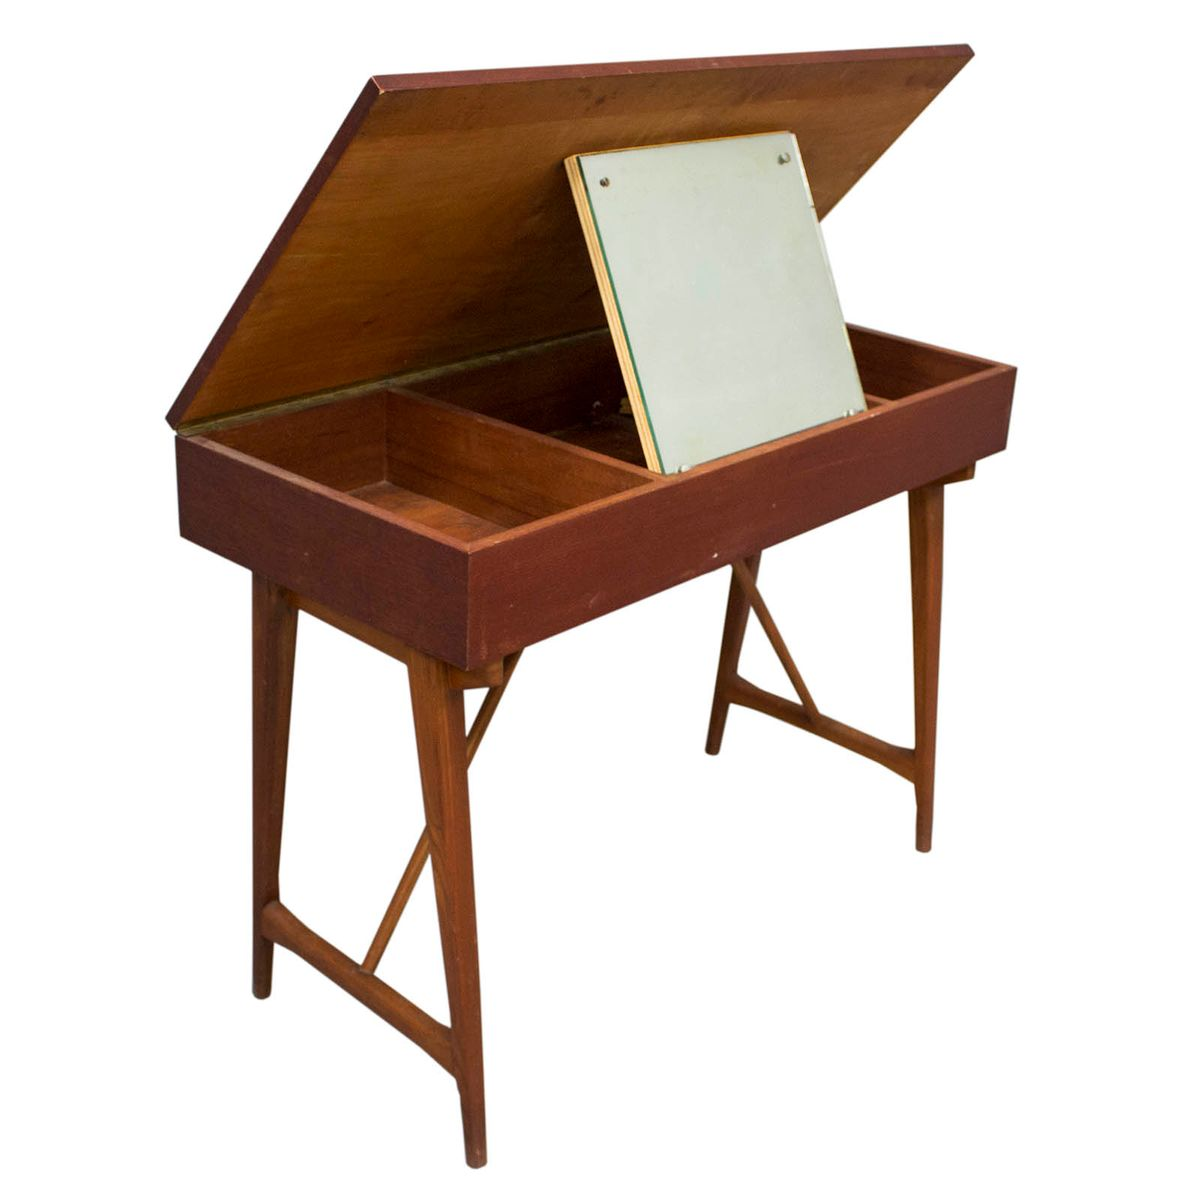 Dressing table s for sale at pamono